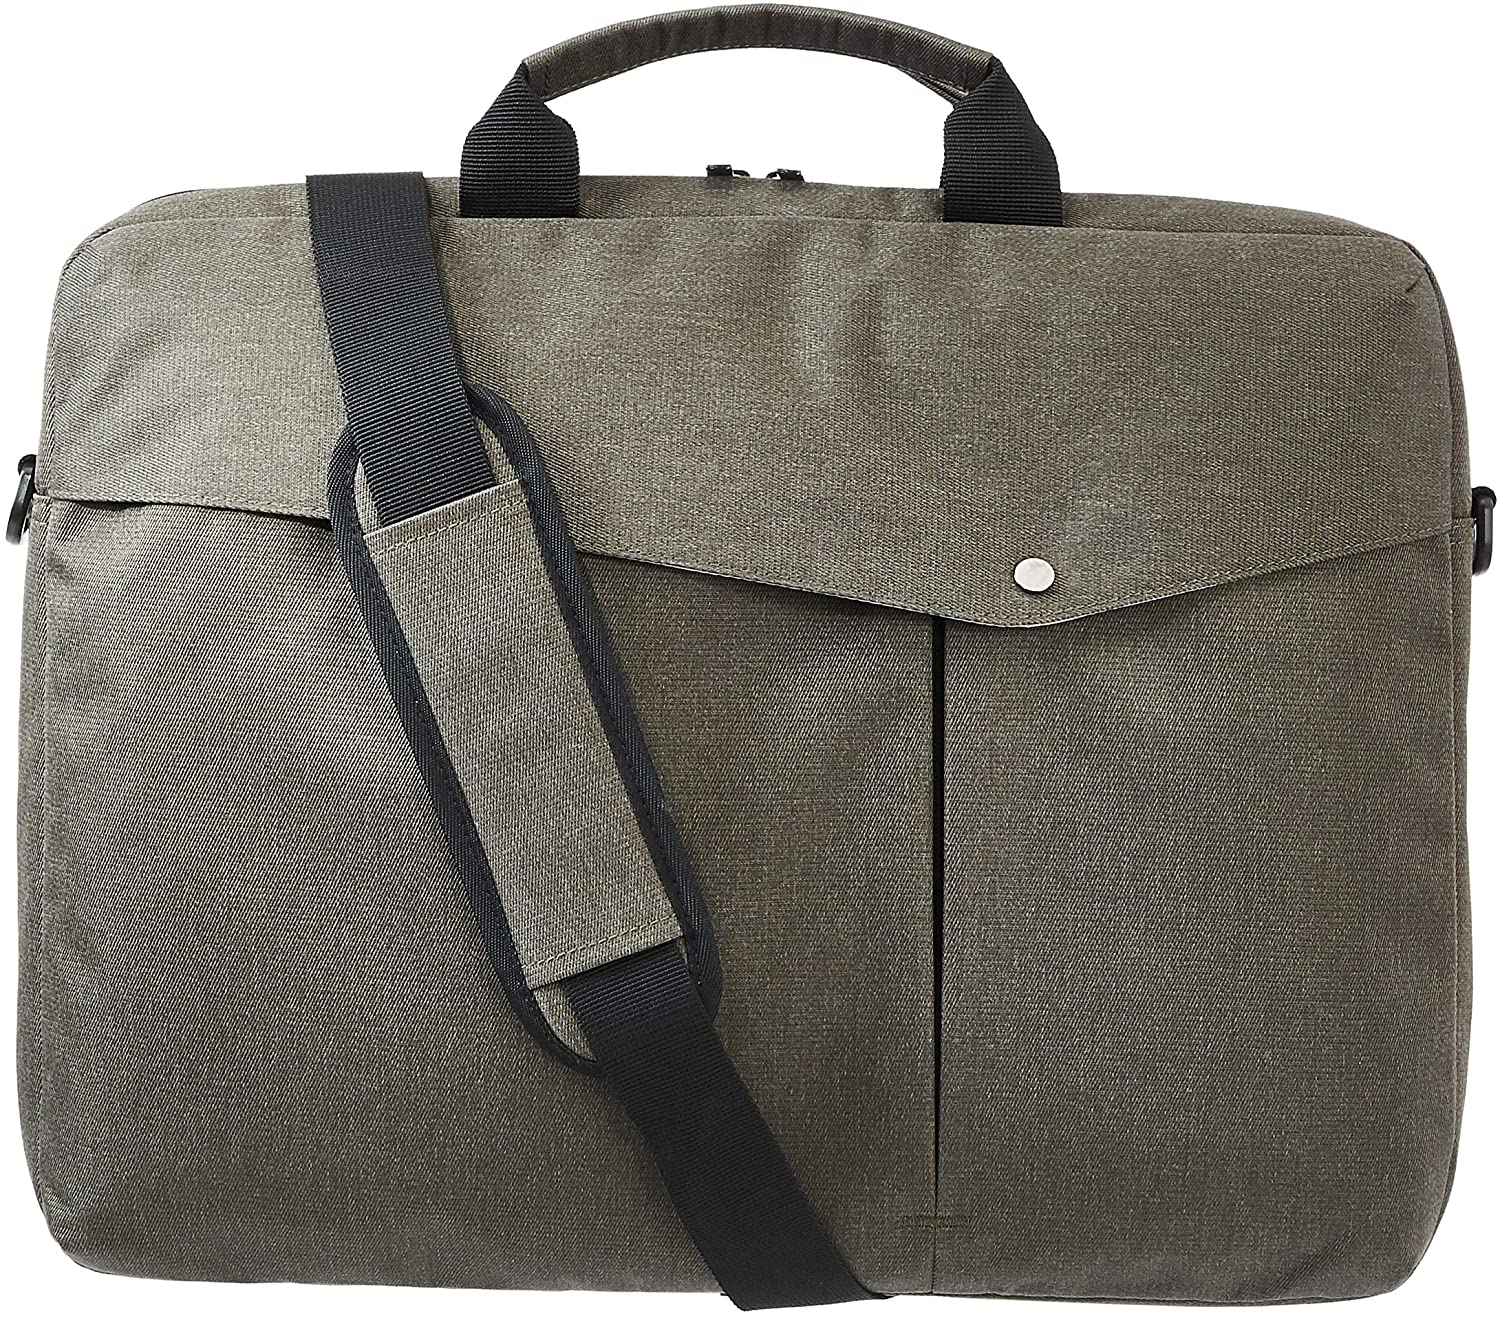 AmazonBasics Business Laptop Case - 17-Inch, Army Green